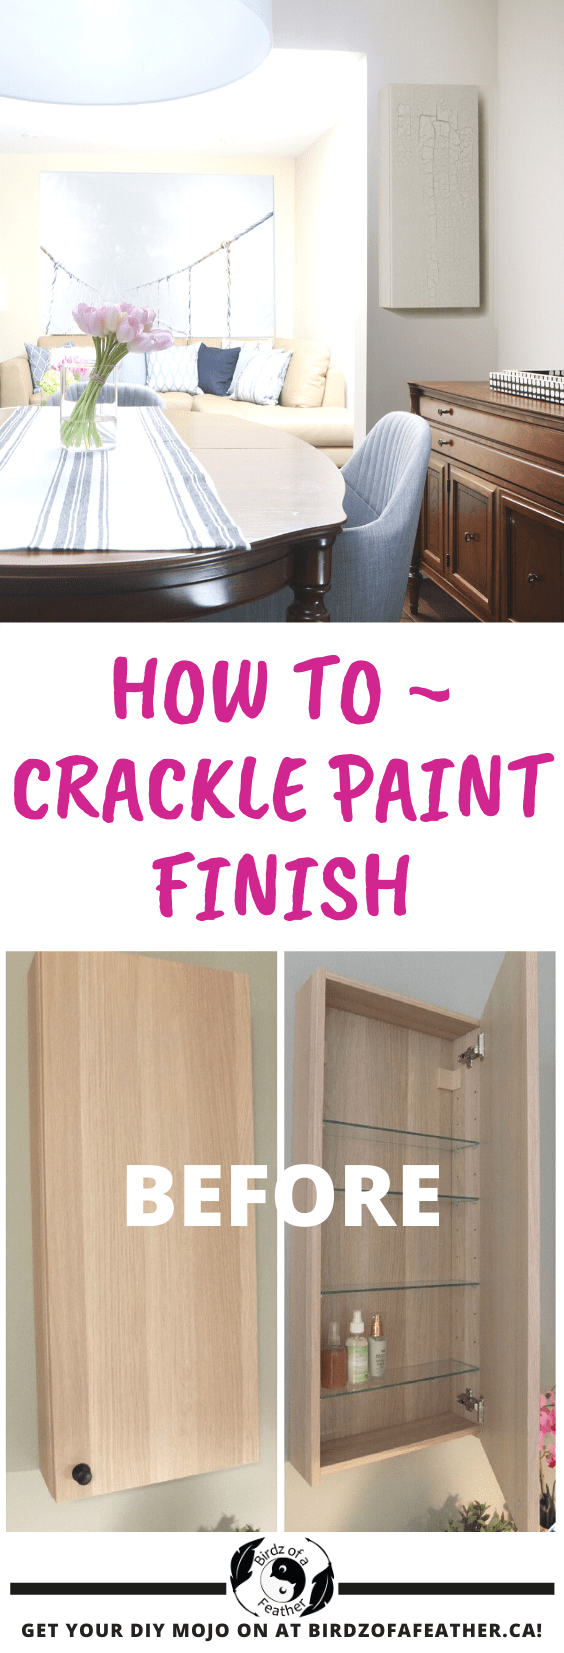 Update an Ikea Godmorgon cabinet with a crackle finish | Ikea hack | crackle paint | crackle painted furniture | medicine cabinet | Ikea | godmorgon | godmorgon hack | faux finish painting | faux finish furniture #crackling #cracklepaint #crackleglaze #ikea #ikeahack